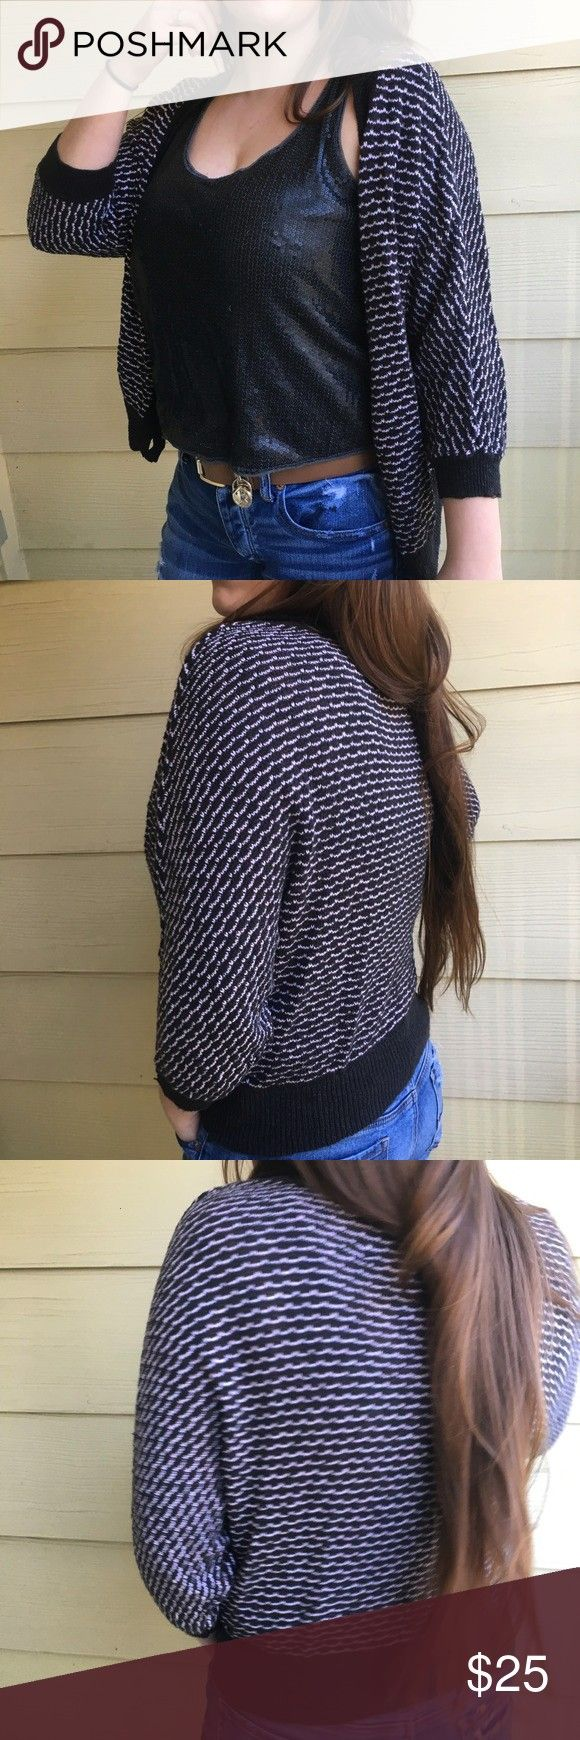 Eagle Striped Cardigan Interesting stitched pattern in black and white americanAmerican Eagle Striped Cardigan Interesting stitched pattern in black and white american Na...